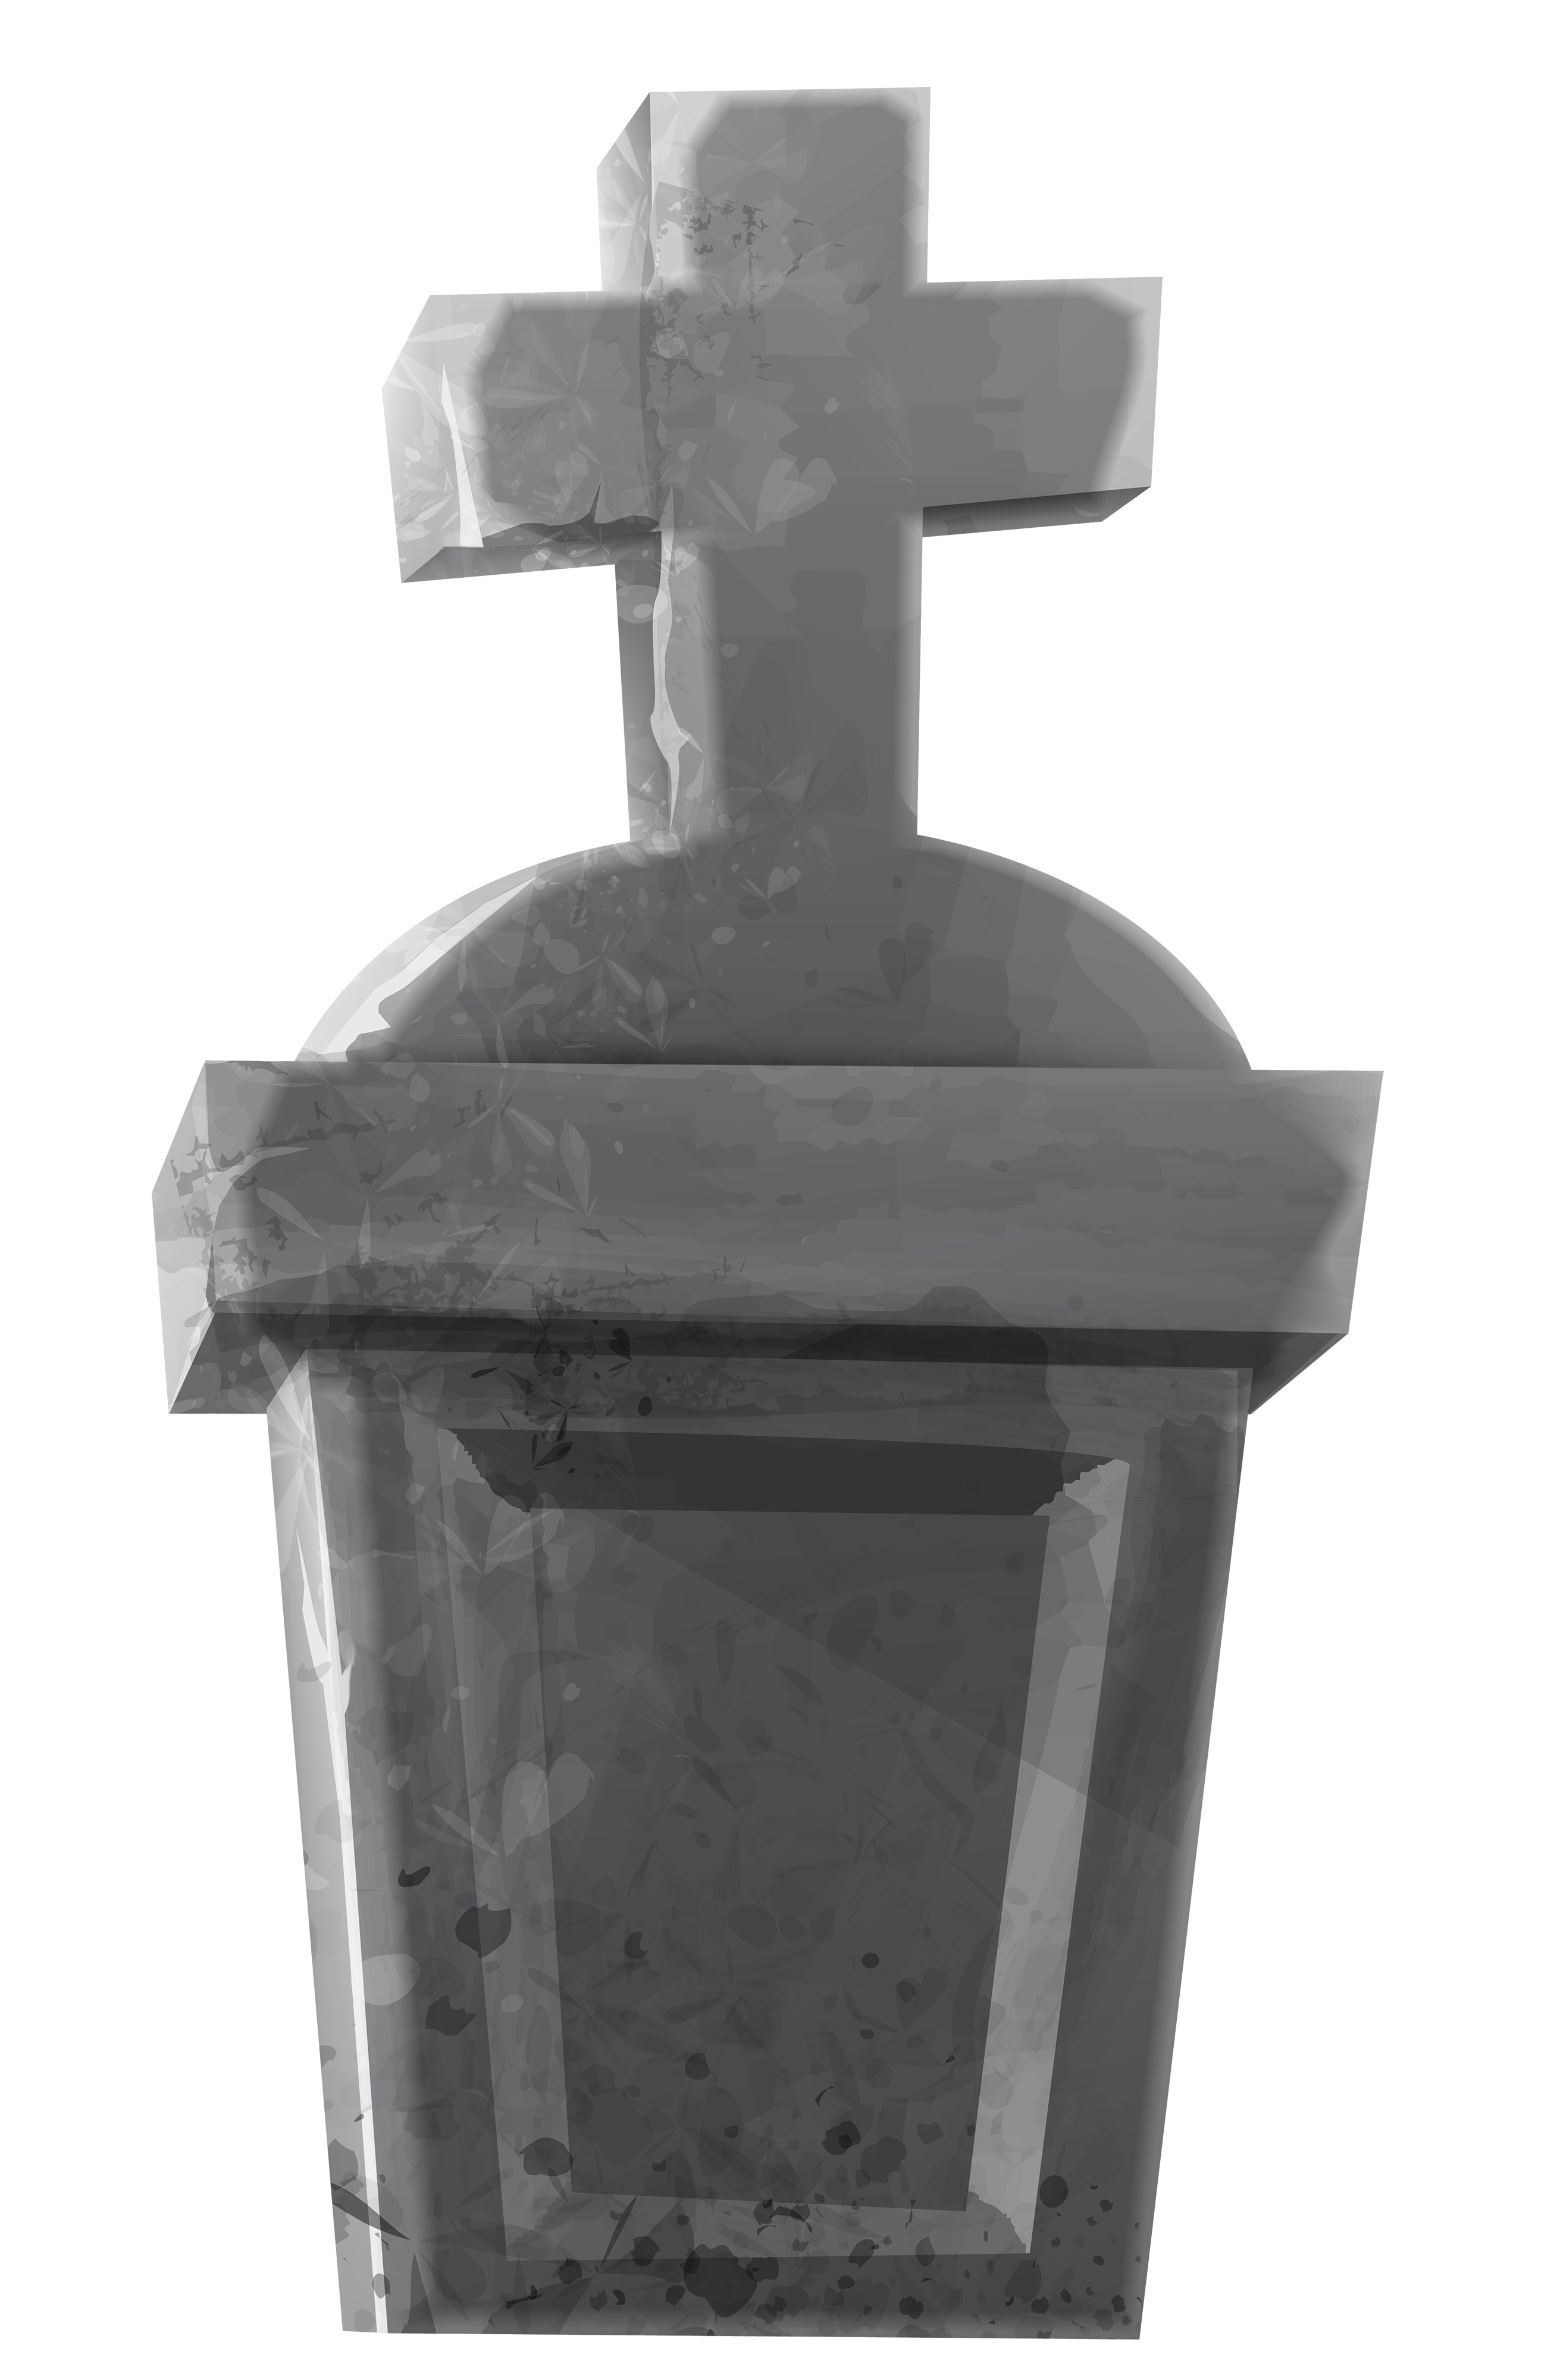 freeuse Free on dumielauxepices net. Gravestone clipart tombstone cross